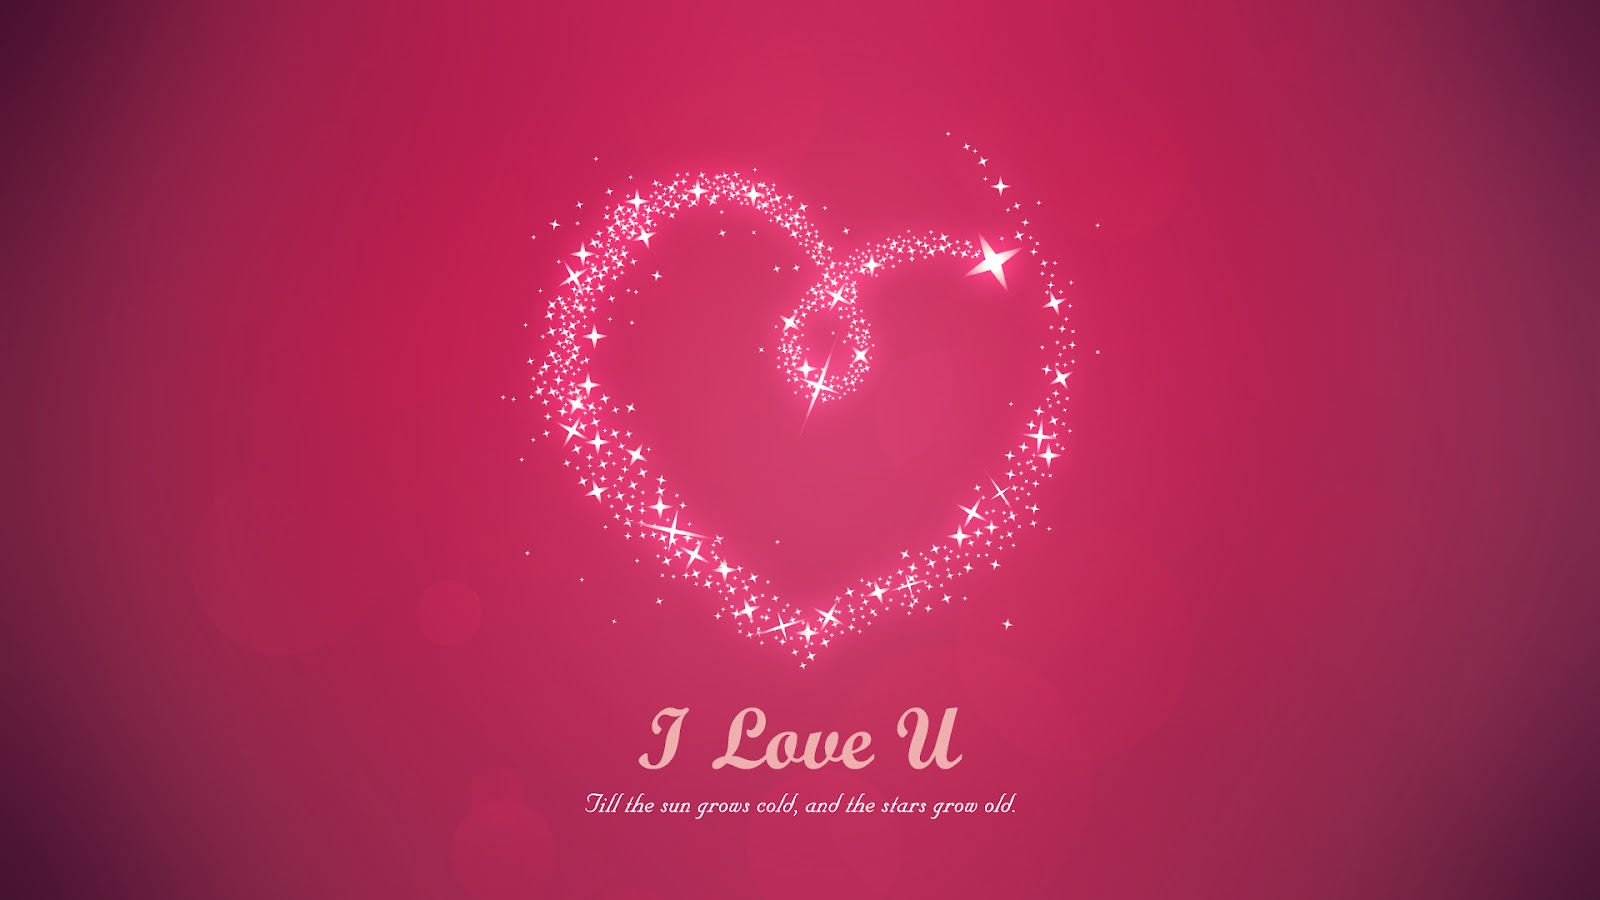 Love Wallpapers Alone : i love u wallpapers love wallpapers love quotes wallpapers sad love wallpapers sad ...